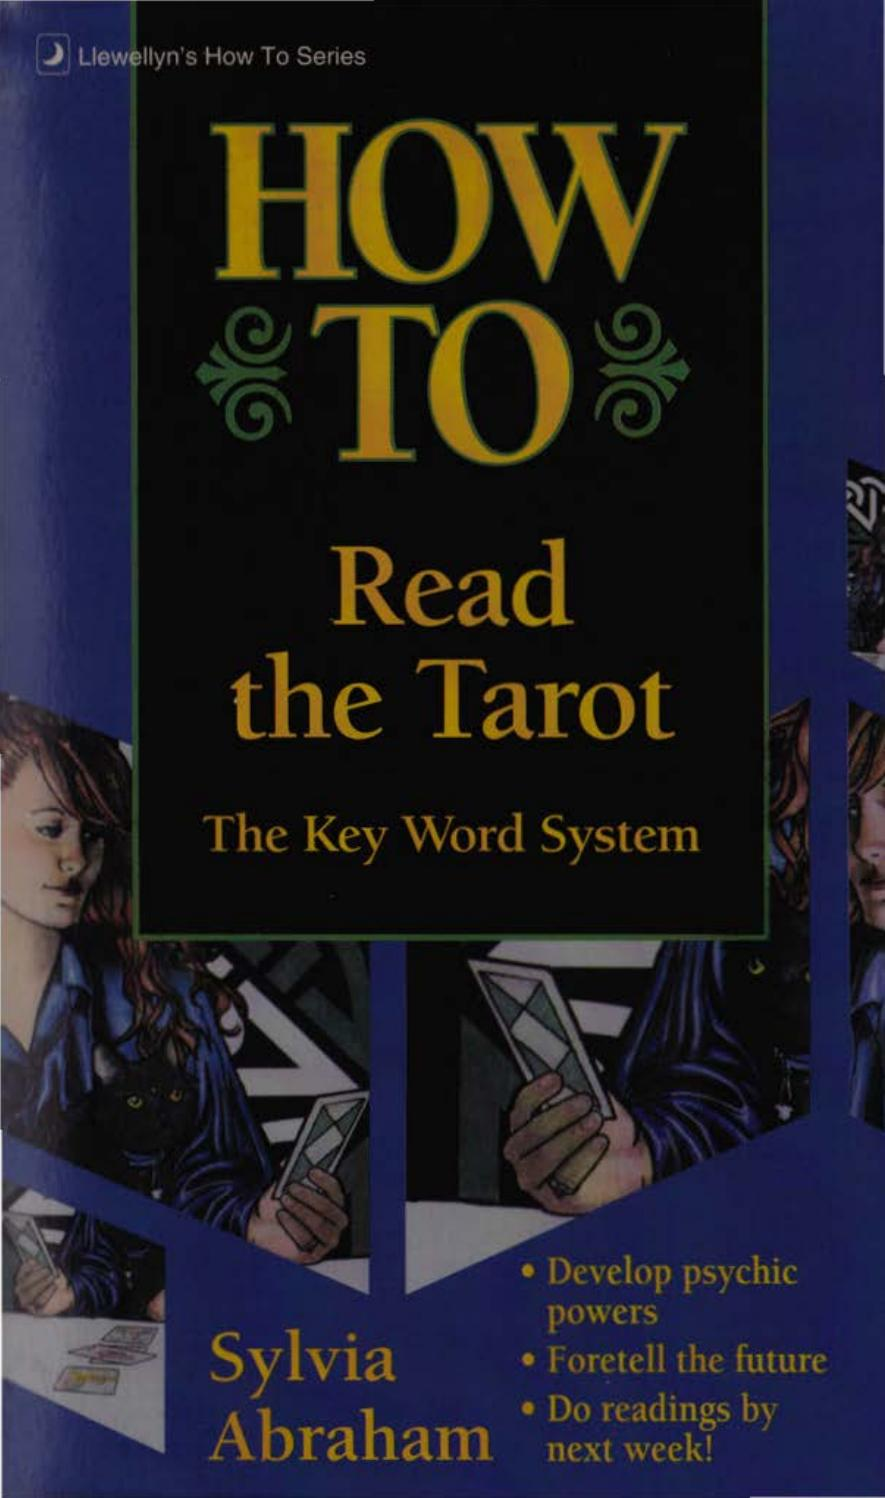 Scribd download com abraham sylvia how to read the tarot by